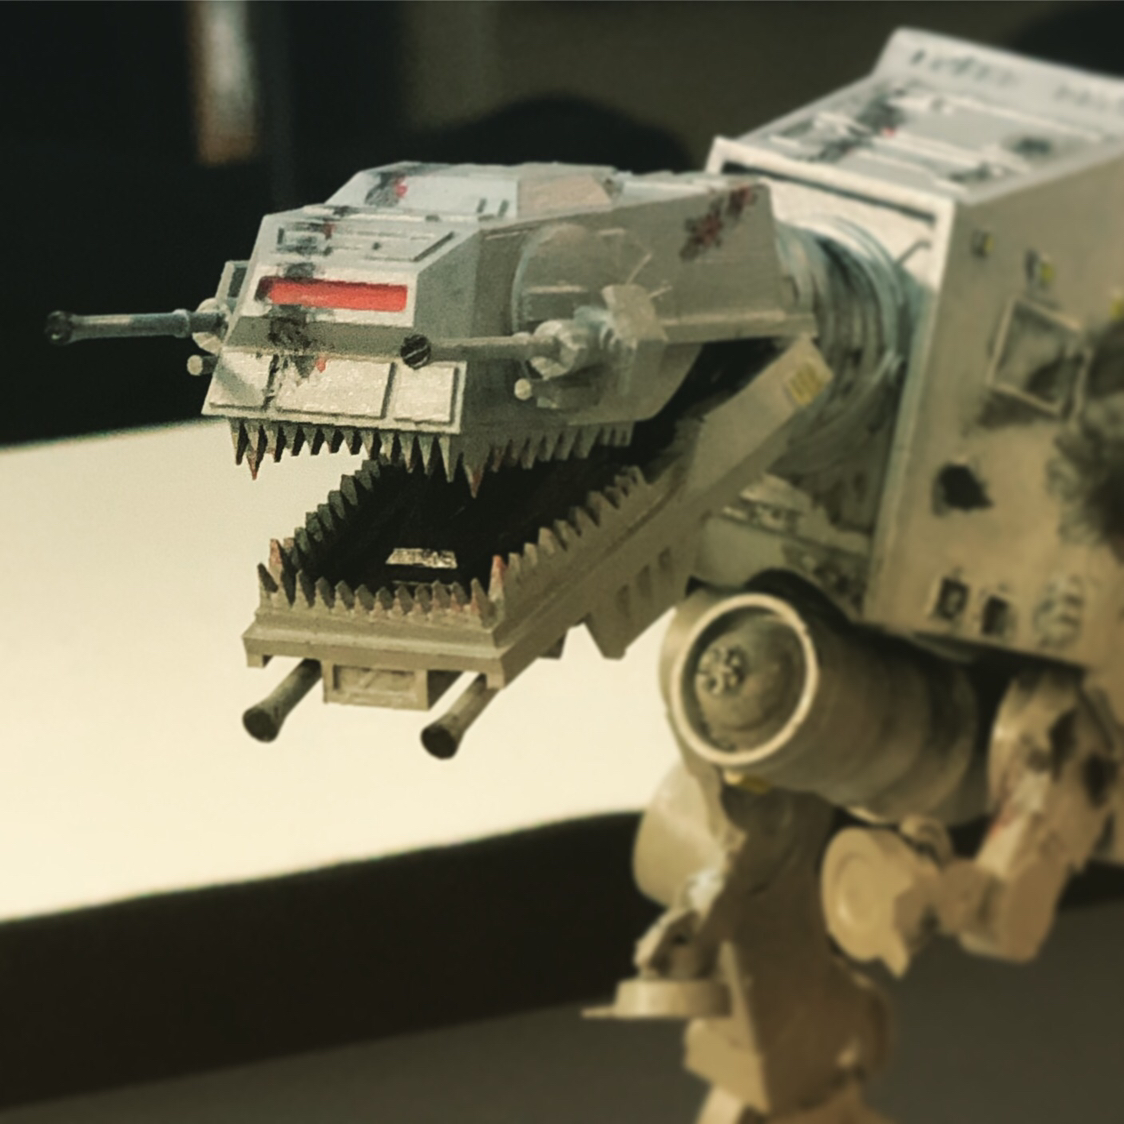 A painted model of an awesome AT-REX design.